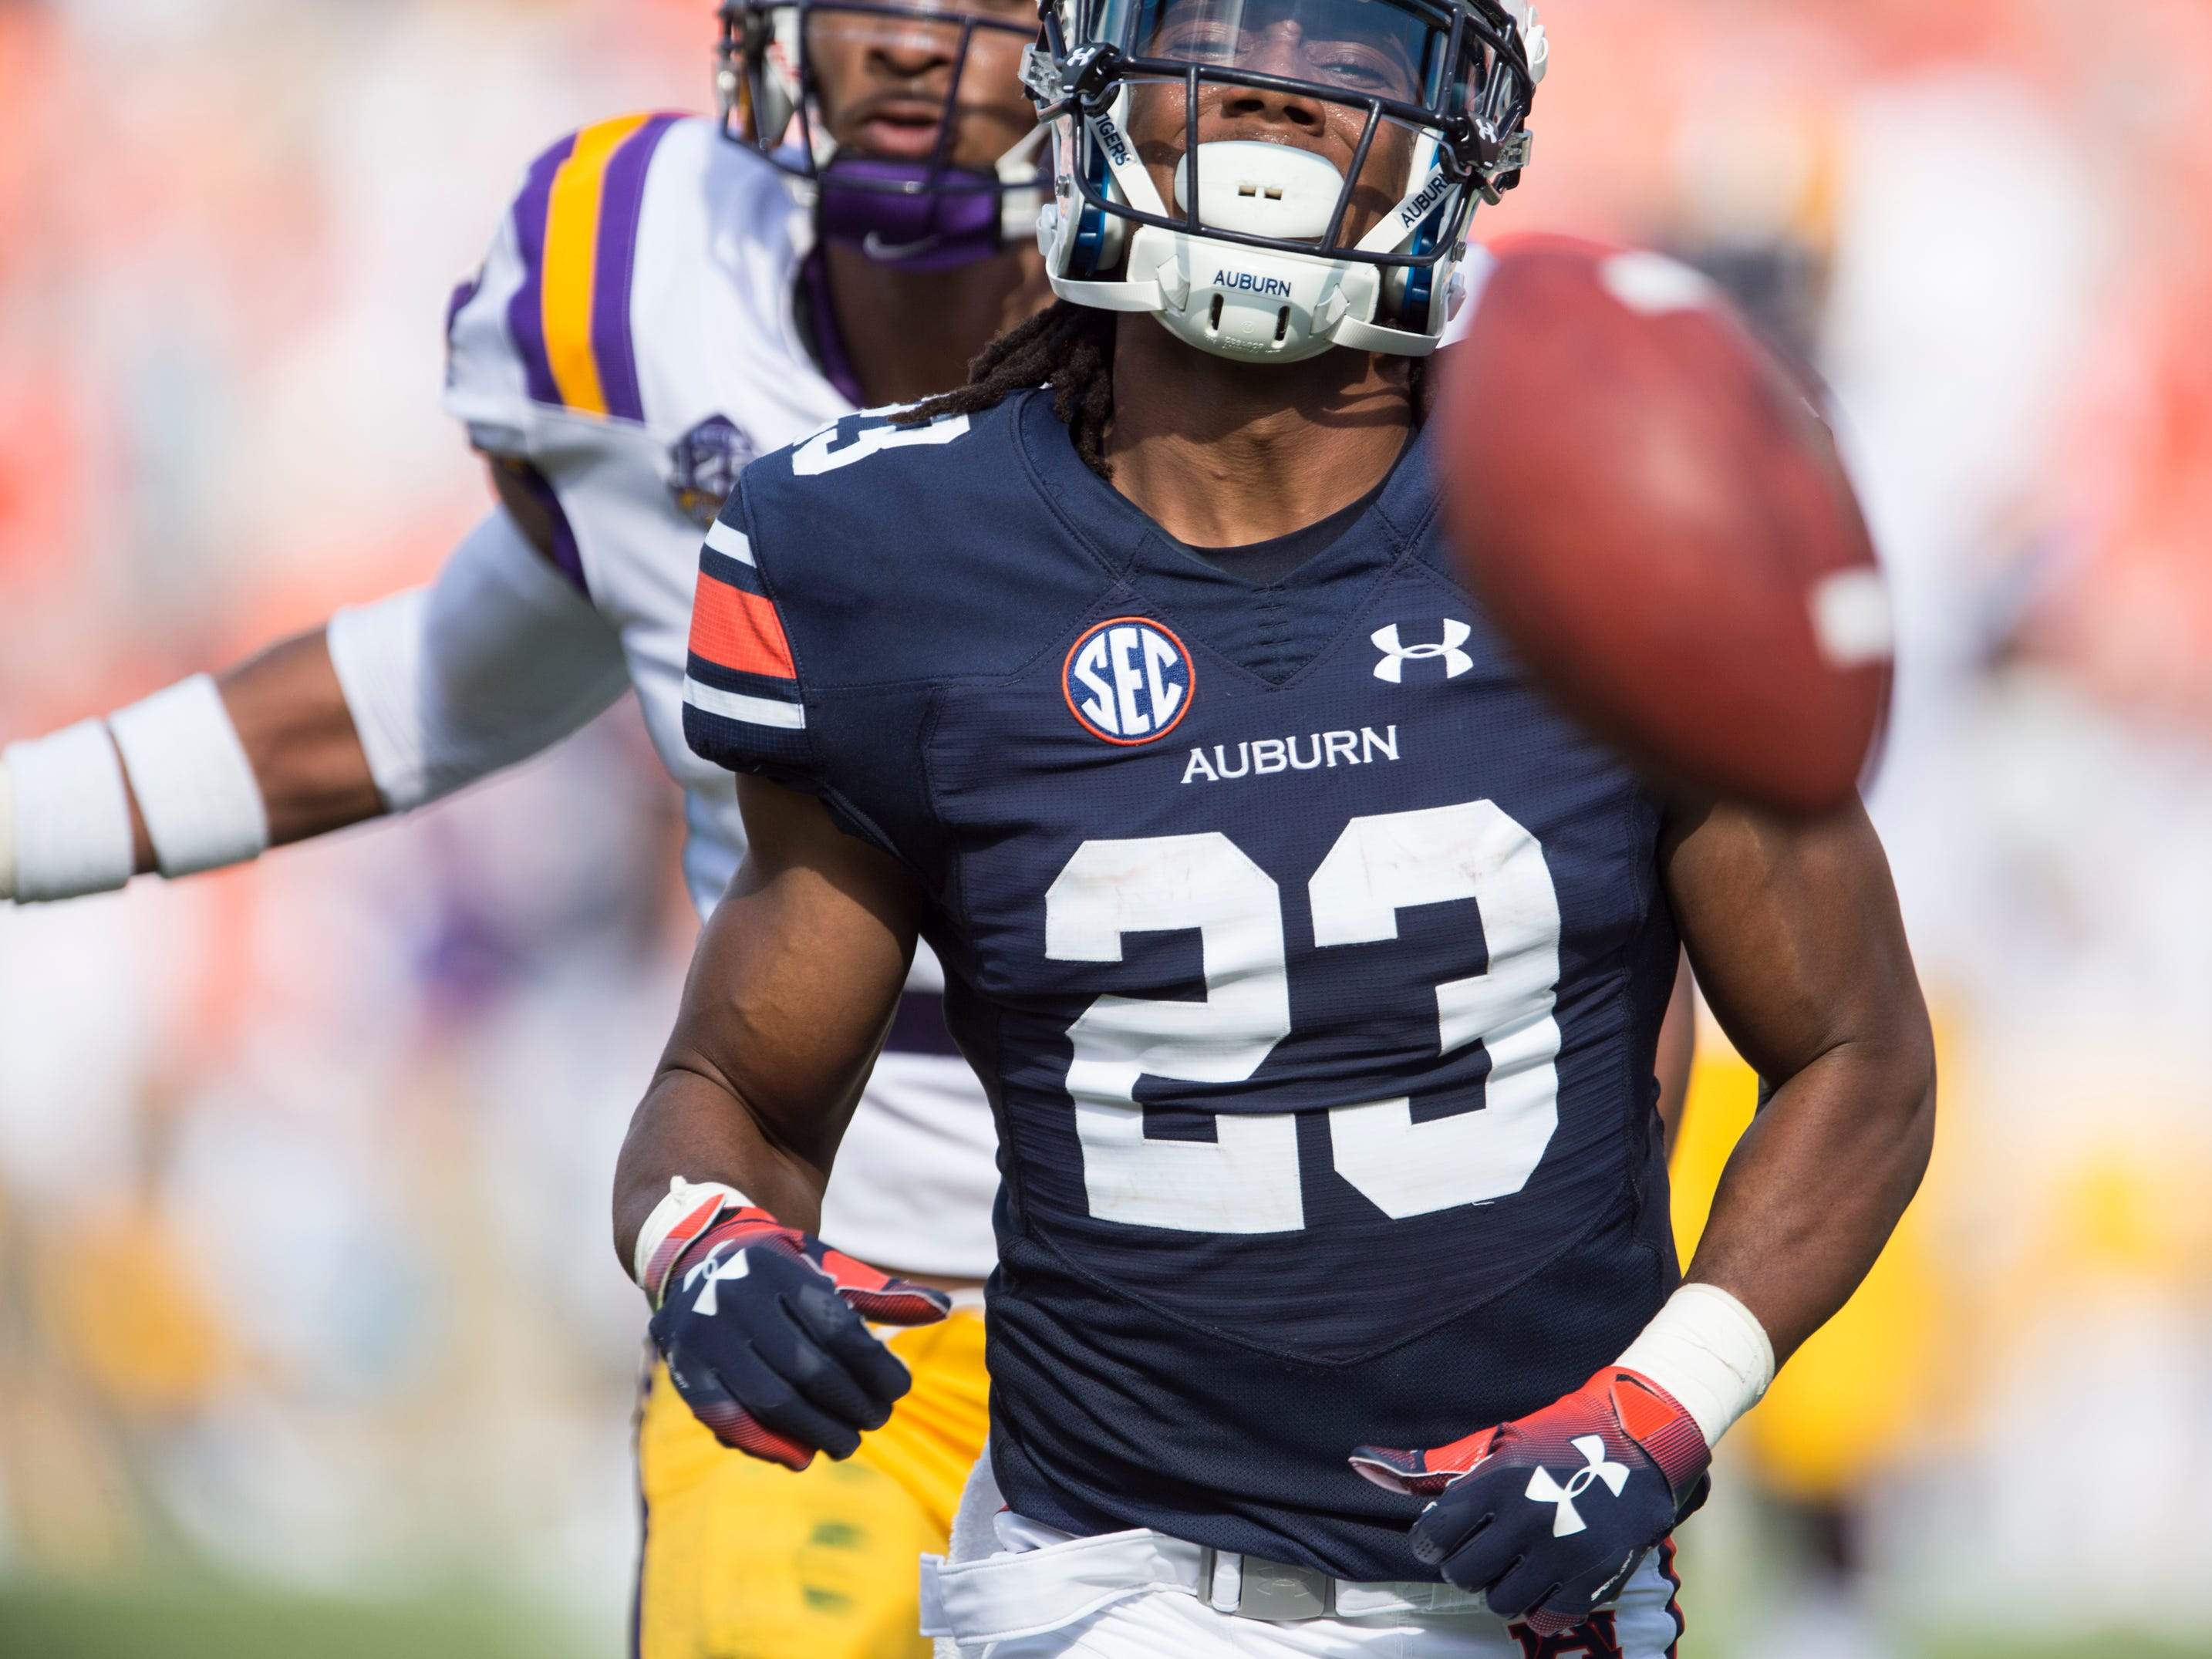 -Auburn's Ryan Davis (23) watches as an overthrow ball bounces in front of him at Jordan-Hare Stadium in Auburn, Ala., on Saturday, Sept. 15, 2018. Auburn leads LSU 14-10 at halftime.